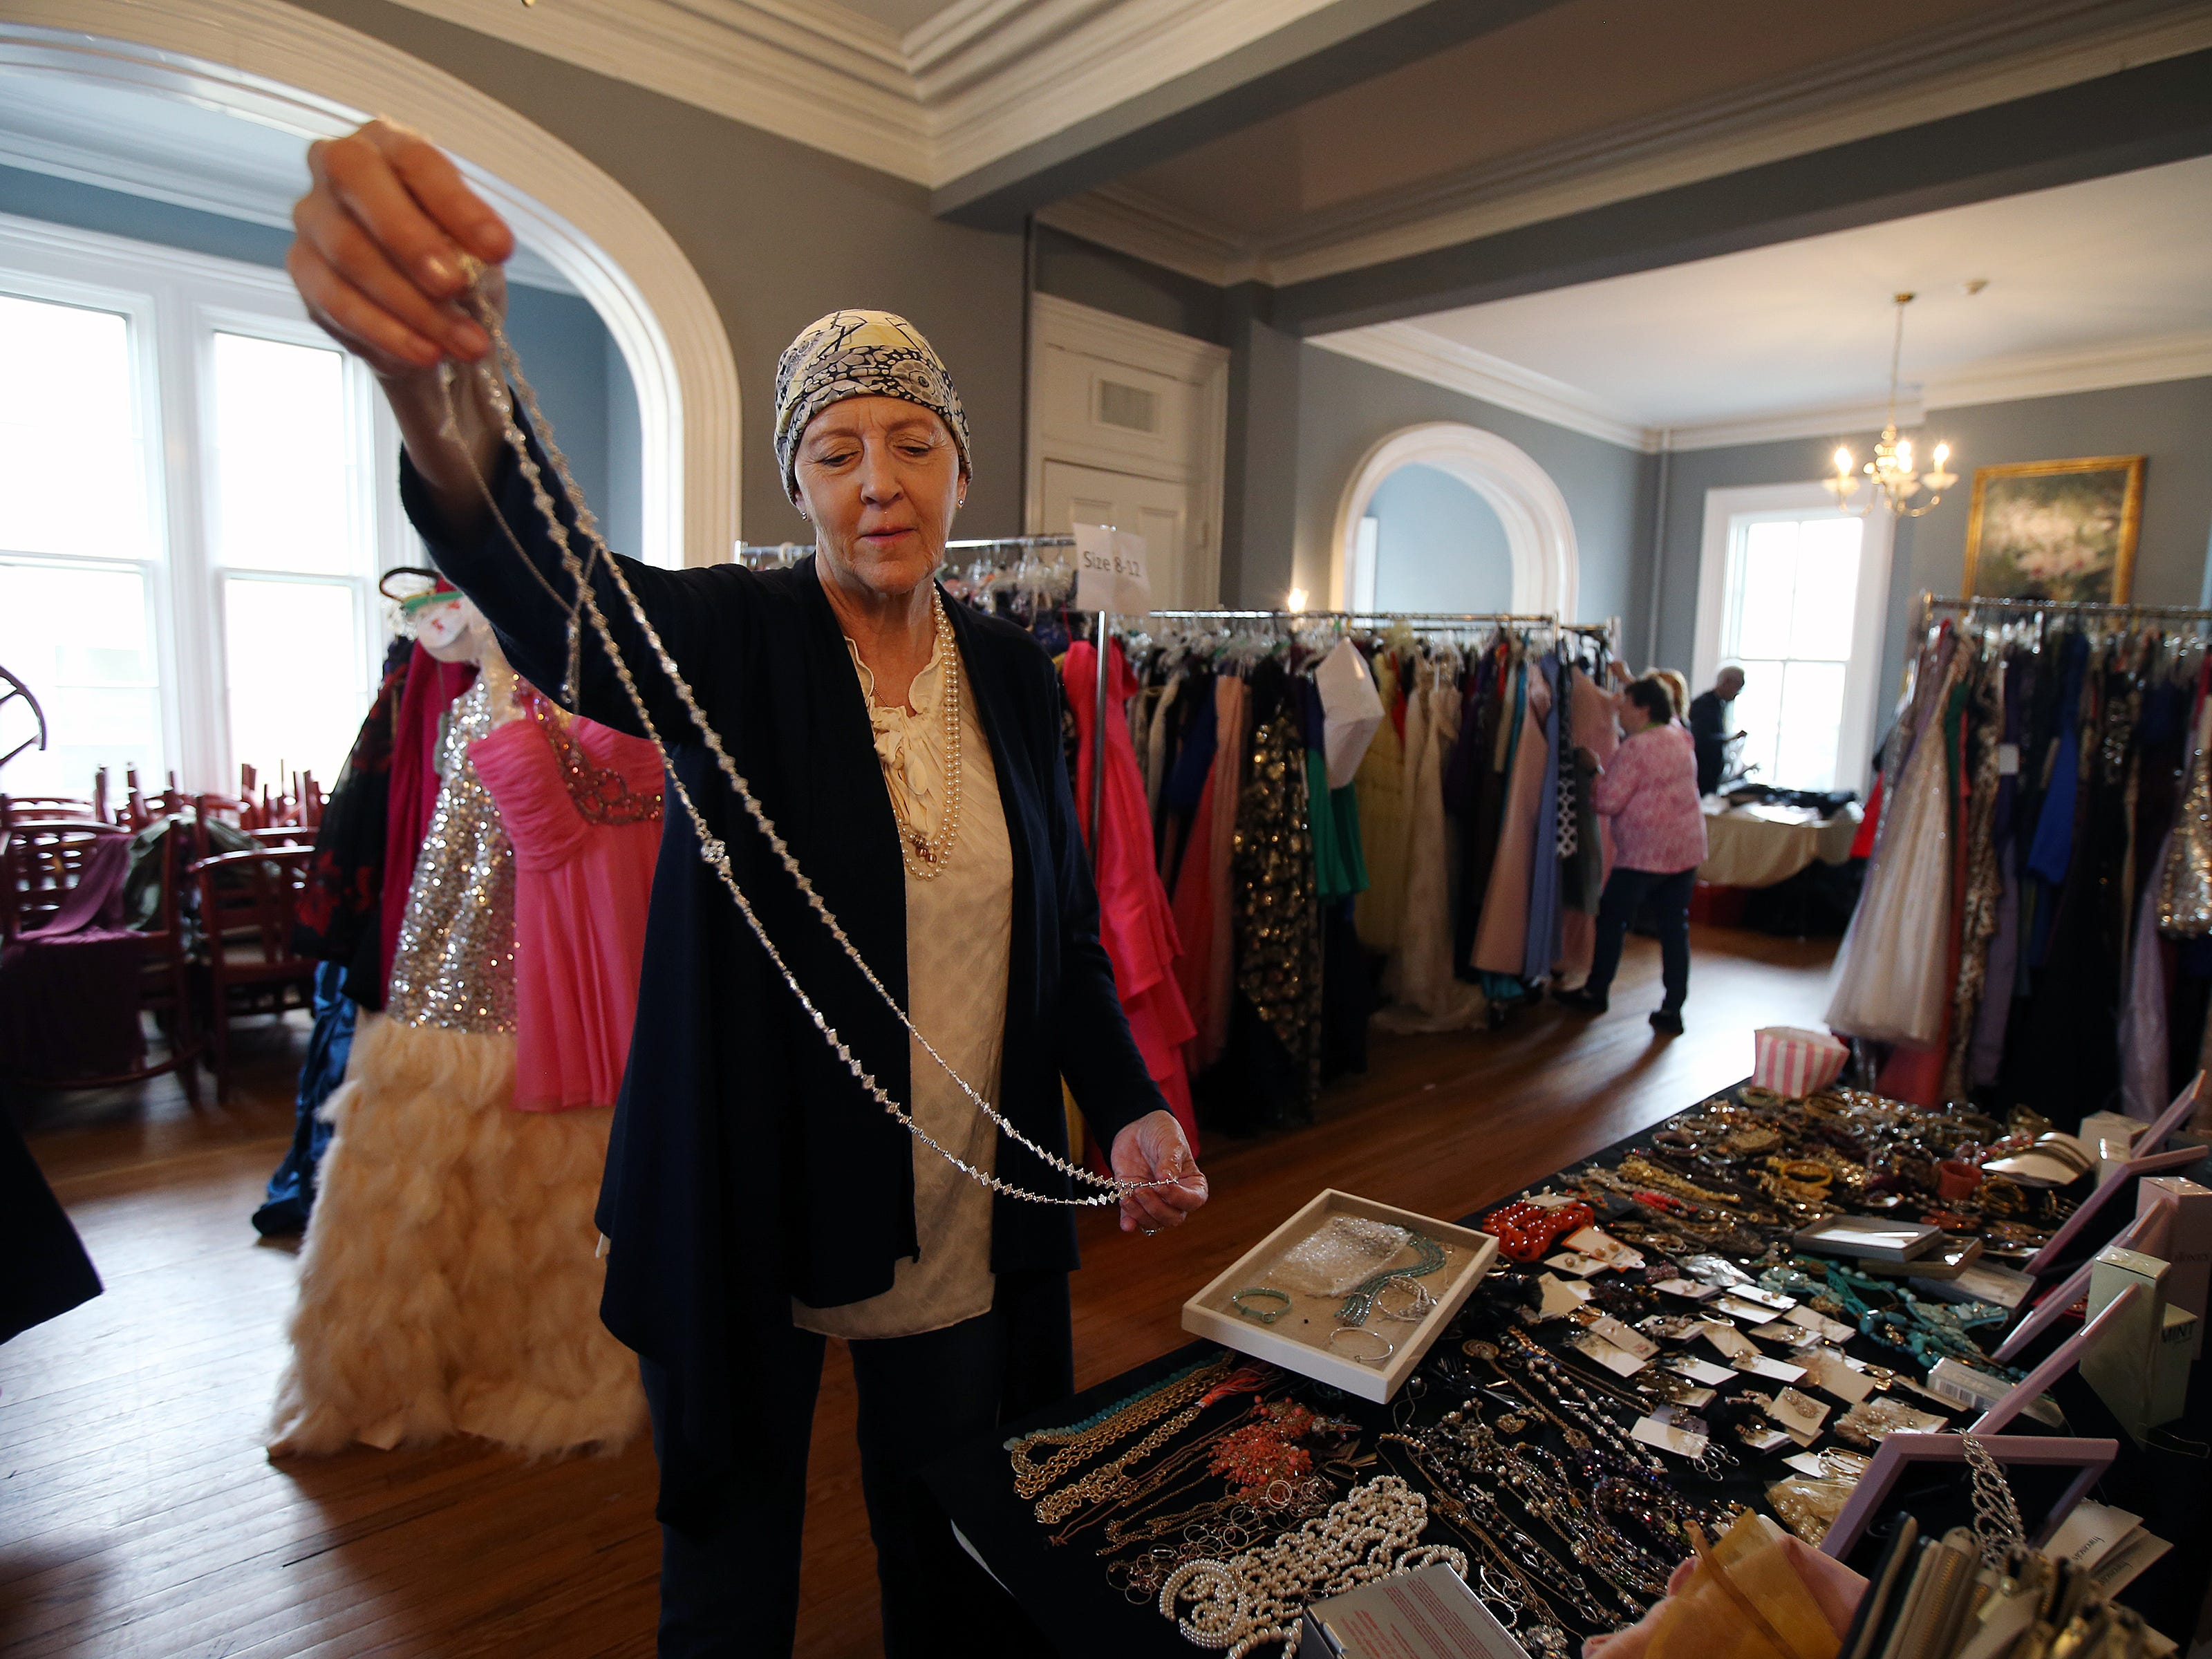 Dorothy Bailey of Rumson, a volunteer who collected jewelry from local vendors and the community, creates a table display of jewelry during the Lunch Break's 4th Annual Prom Giveaway Event at the Woman's Club of Red Bank in Red Bank, NJ Monday, April 22, 2019.